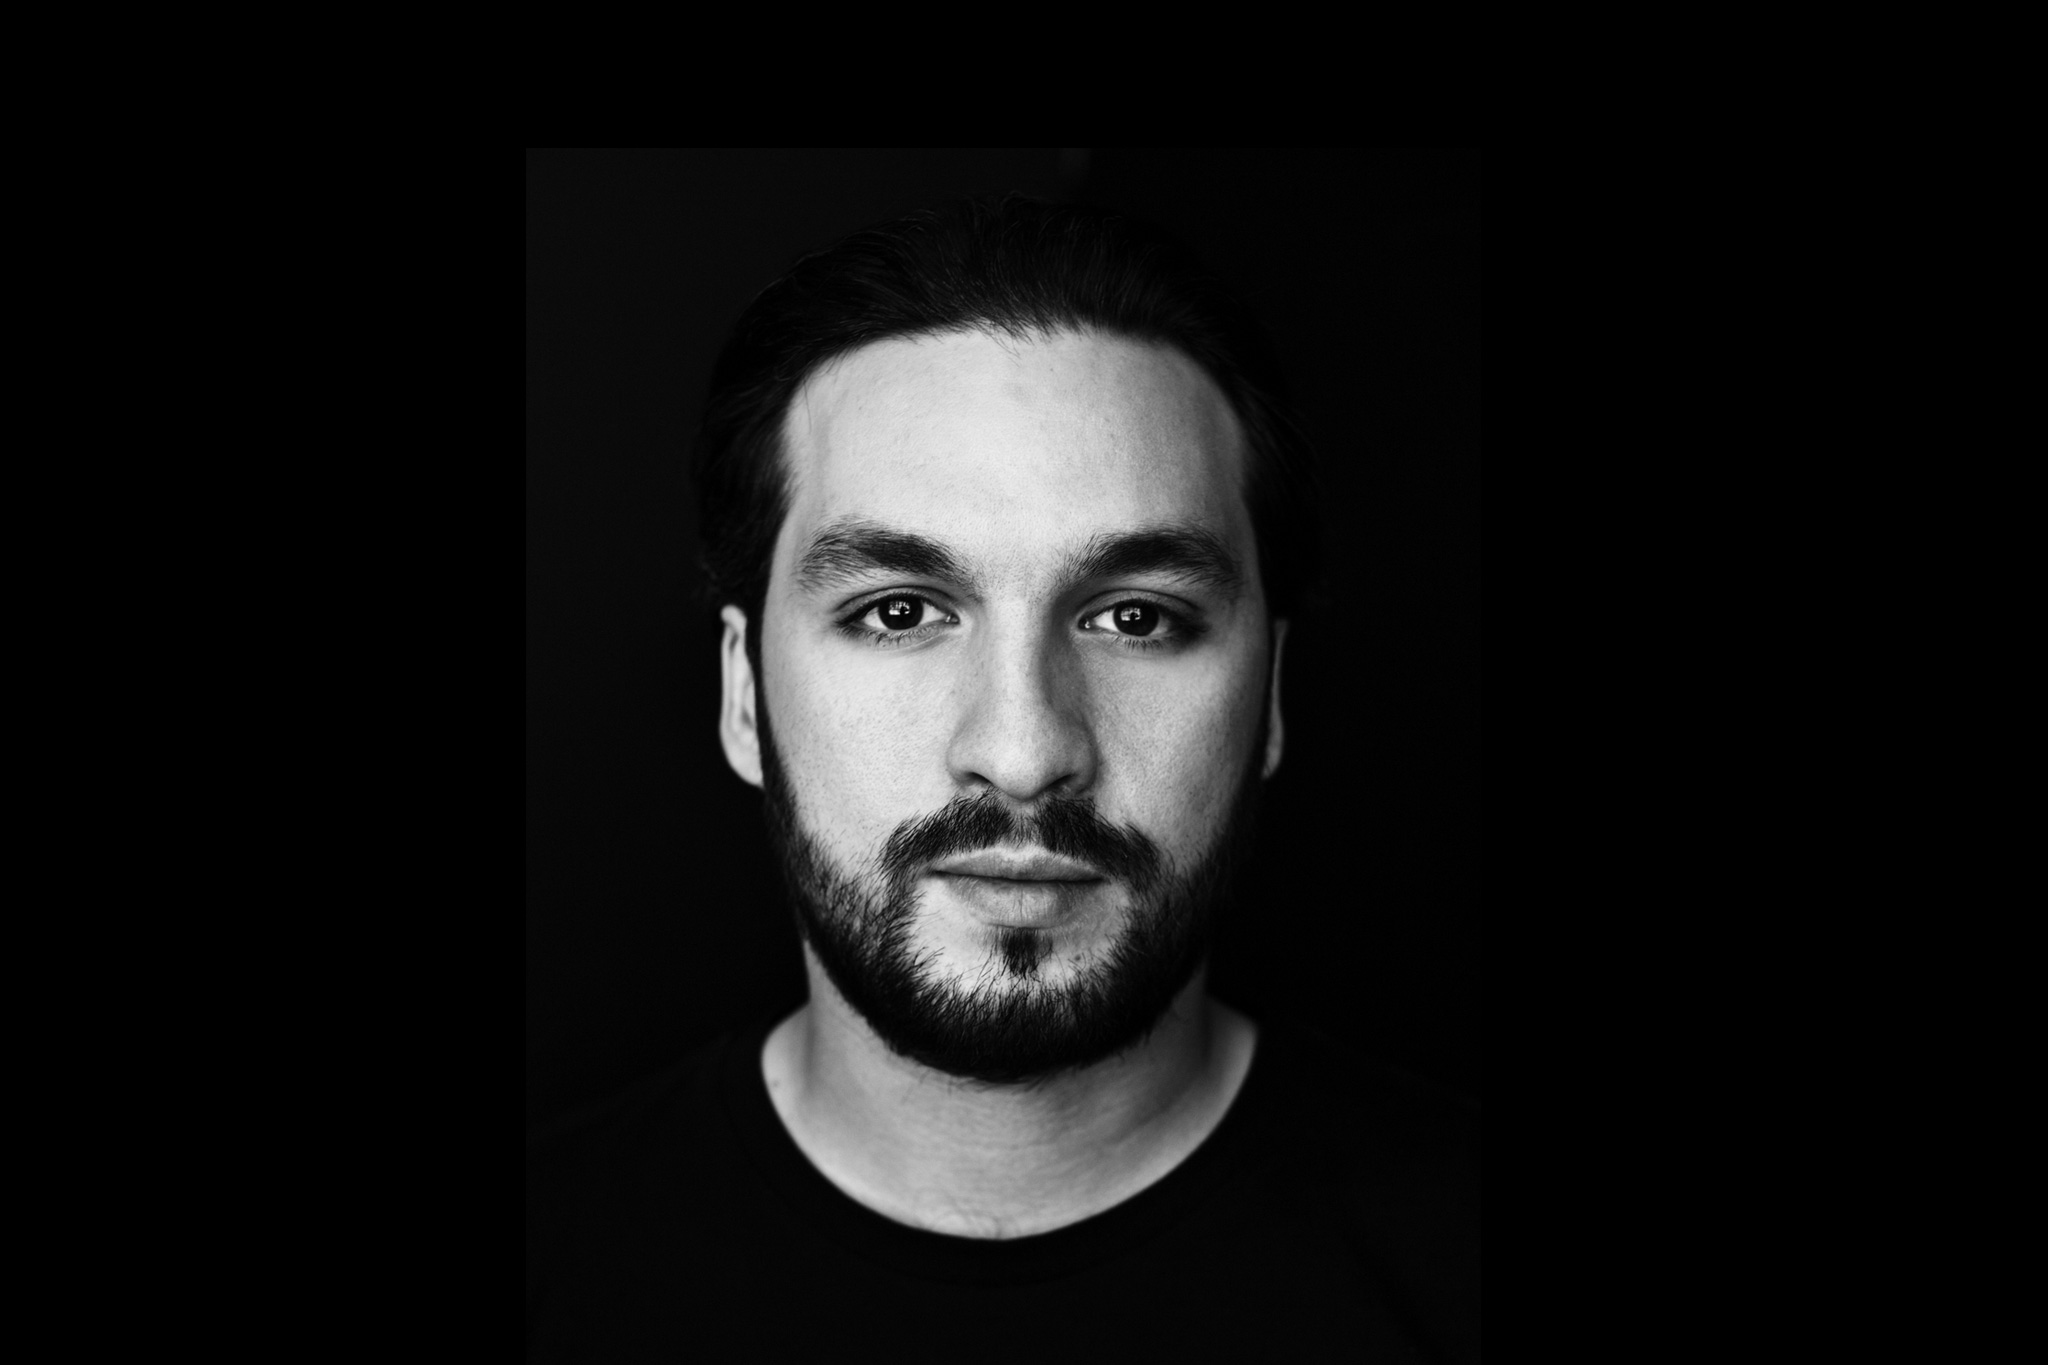 Steve Angello fala de sua nova track 'Wasted Love' AN21, BBC Radio 1, Dougy Mandagi, S-A, Sebjak, SIZE Records, steve angello, swedish house mafia, Temper Trap, Zane Lowe